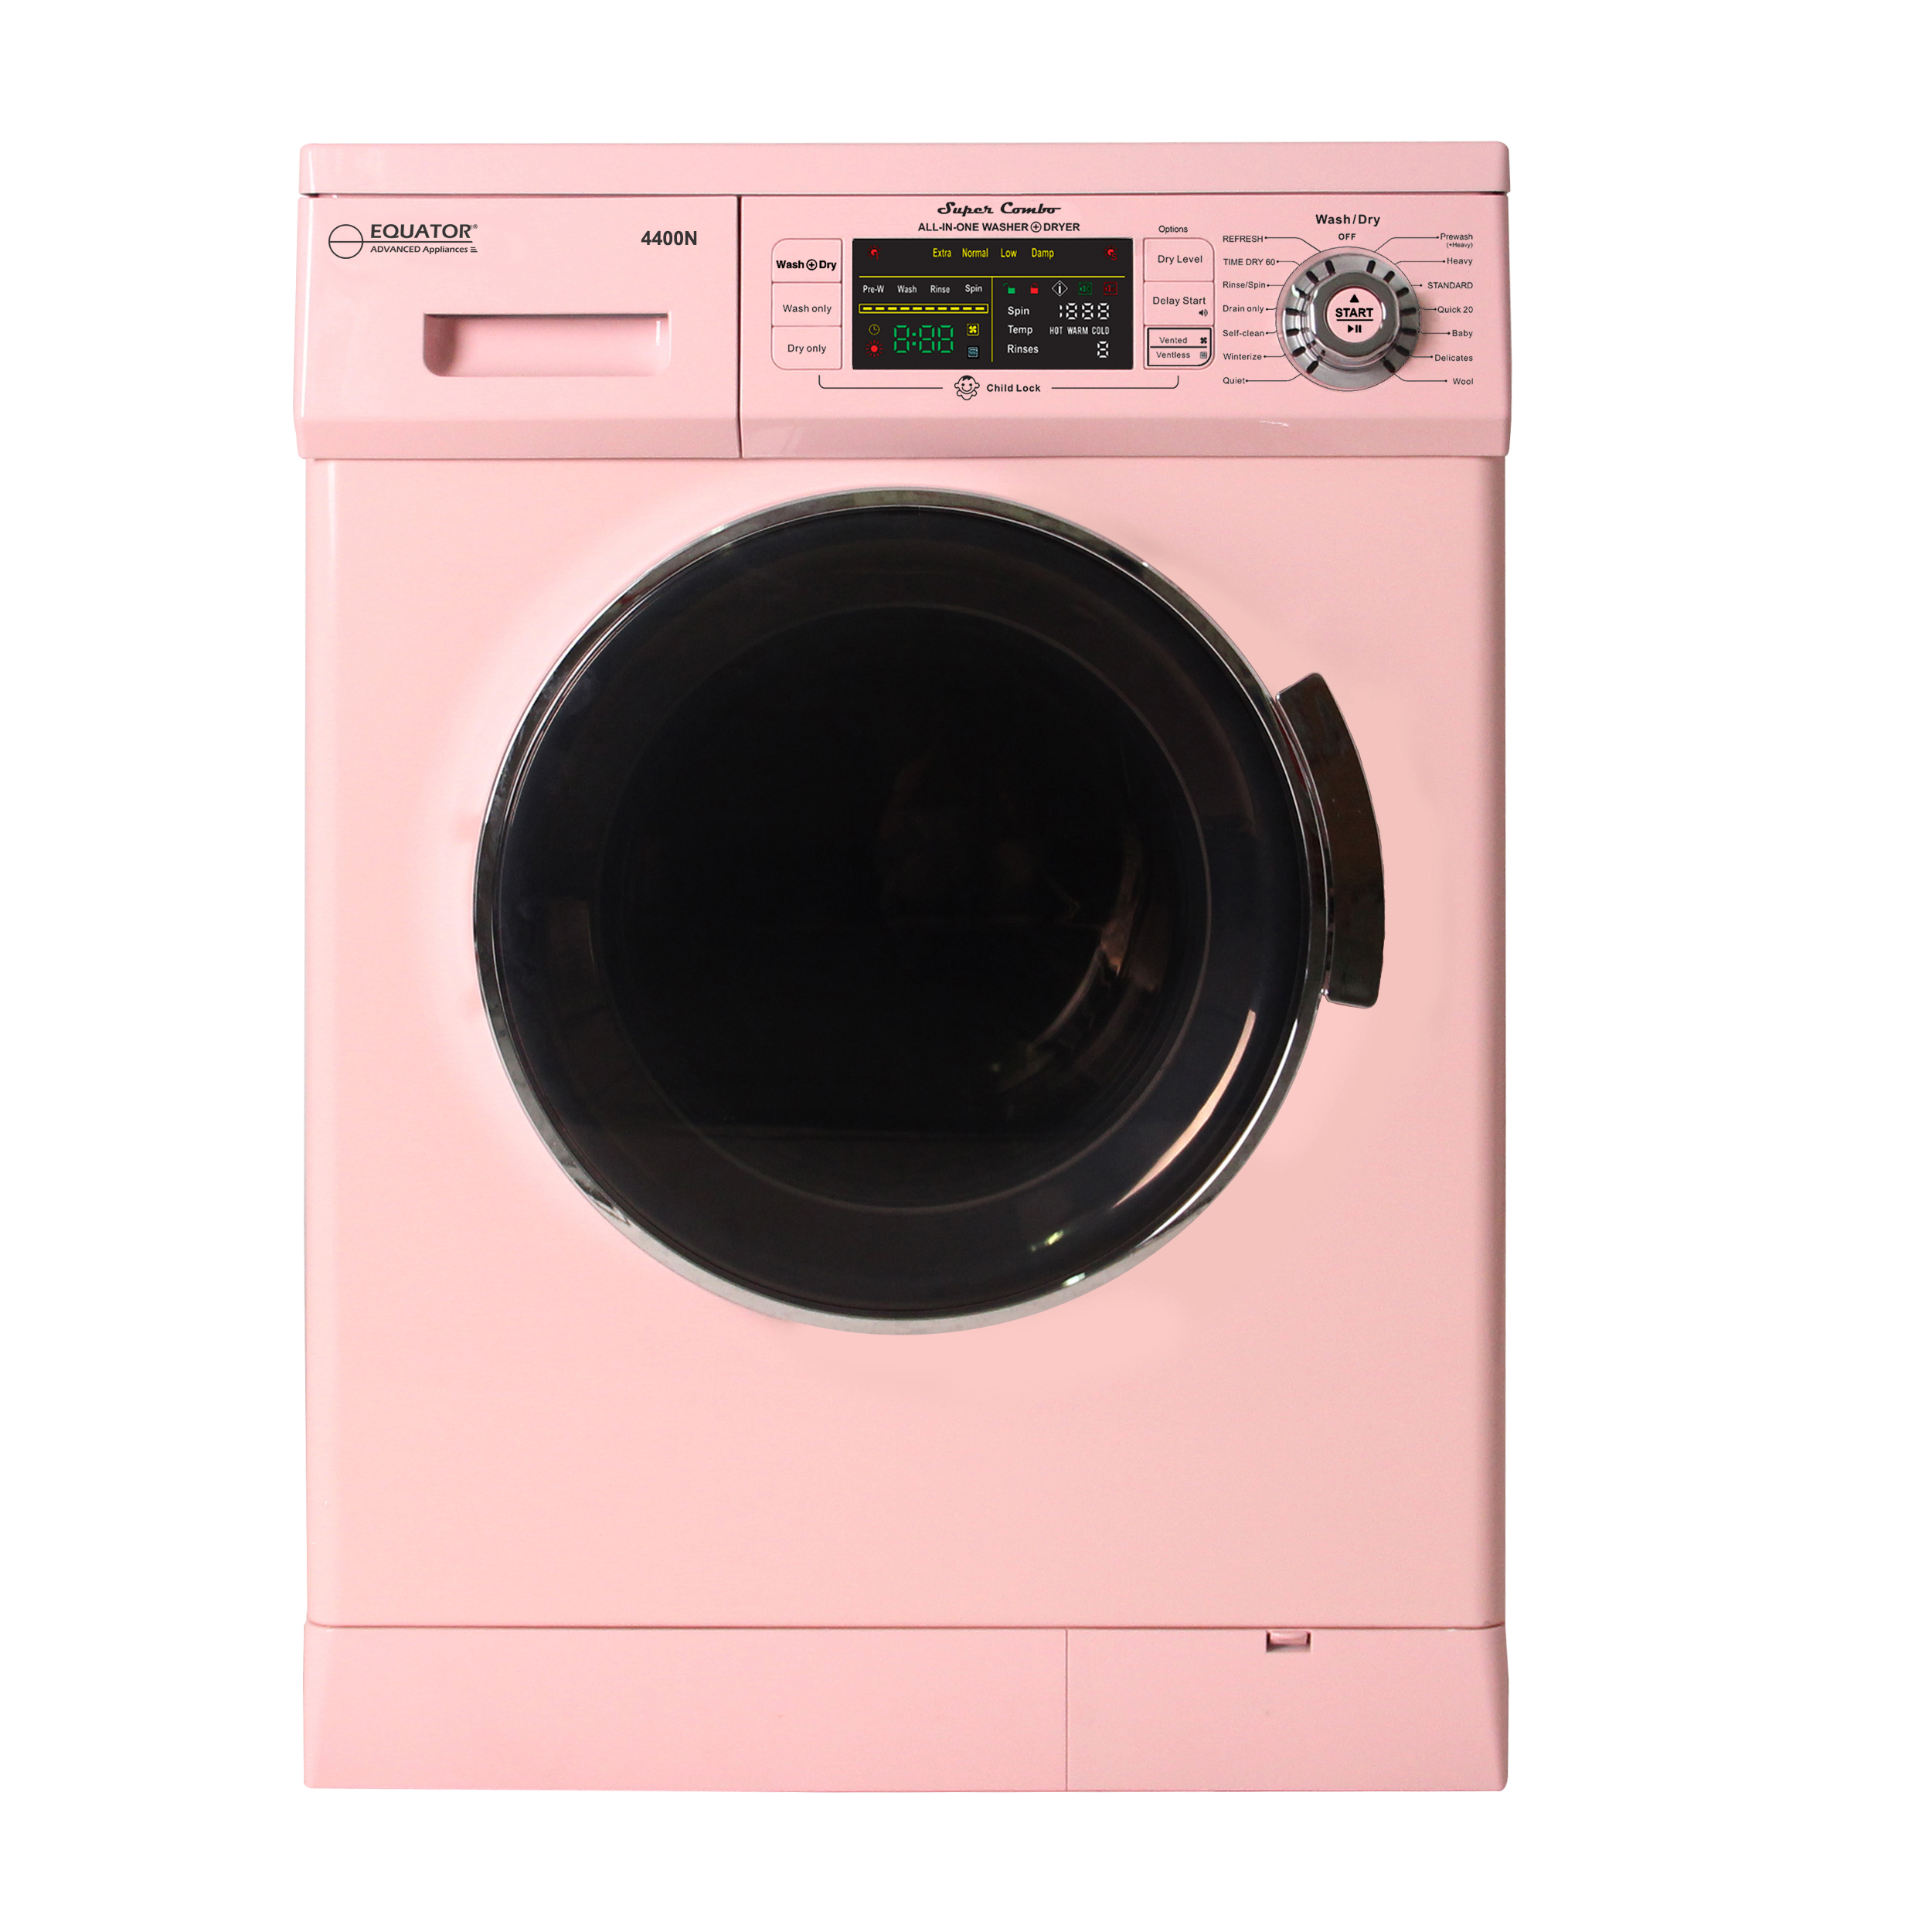 All-in-one 1200 RPM New 2019 Version Compact Convertible Combo Washer Dryer with Fully Digital Control Panel Pink